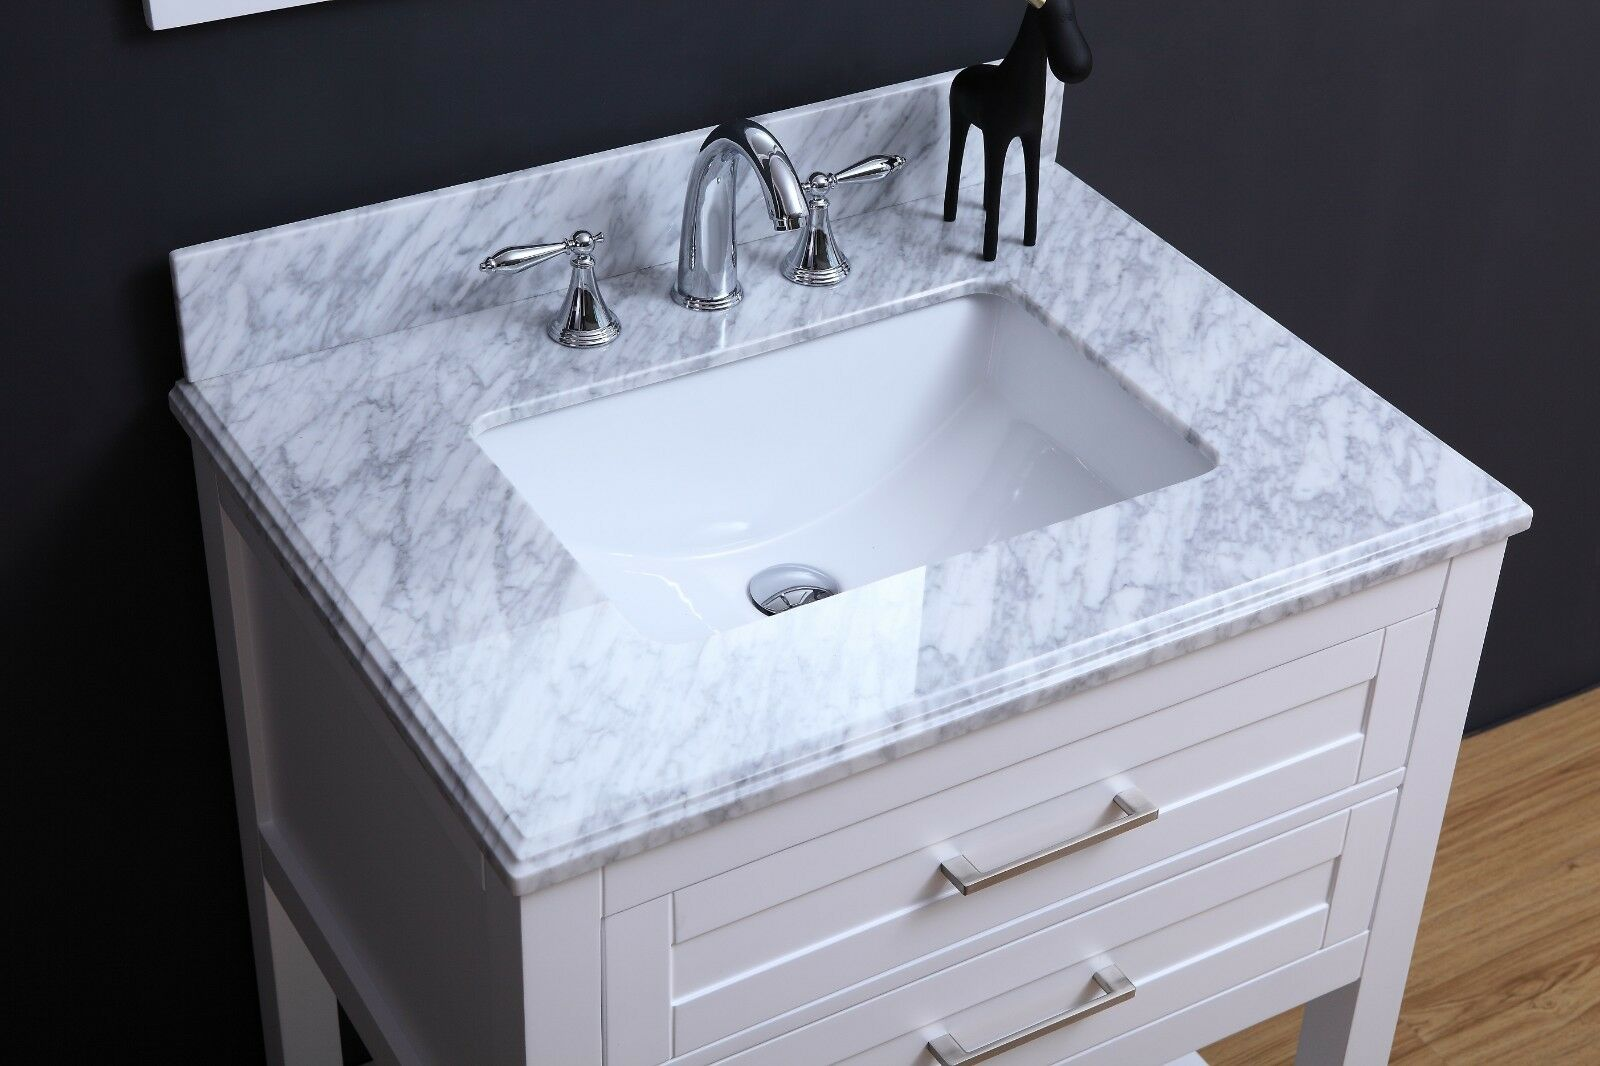 24 Inch Traditional Freestanding White Bathroom Vanity With Marble Top For Sale Online